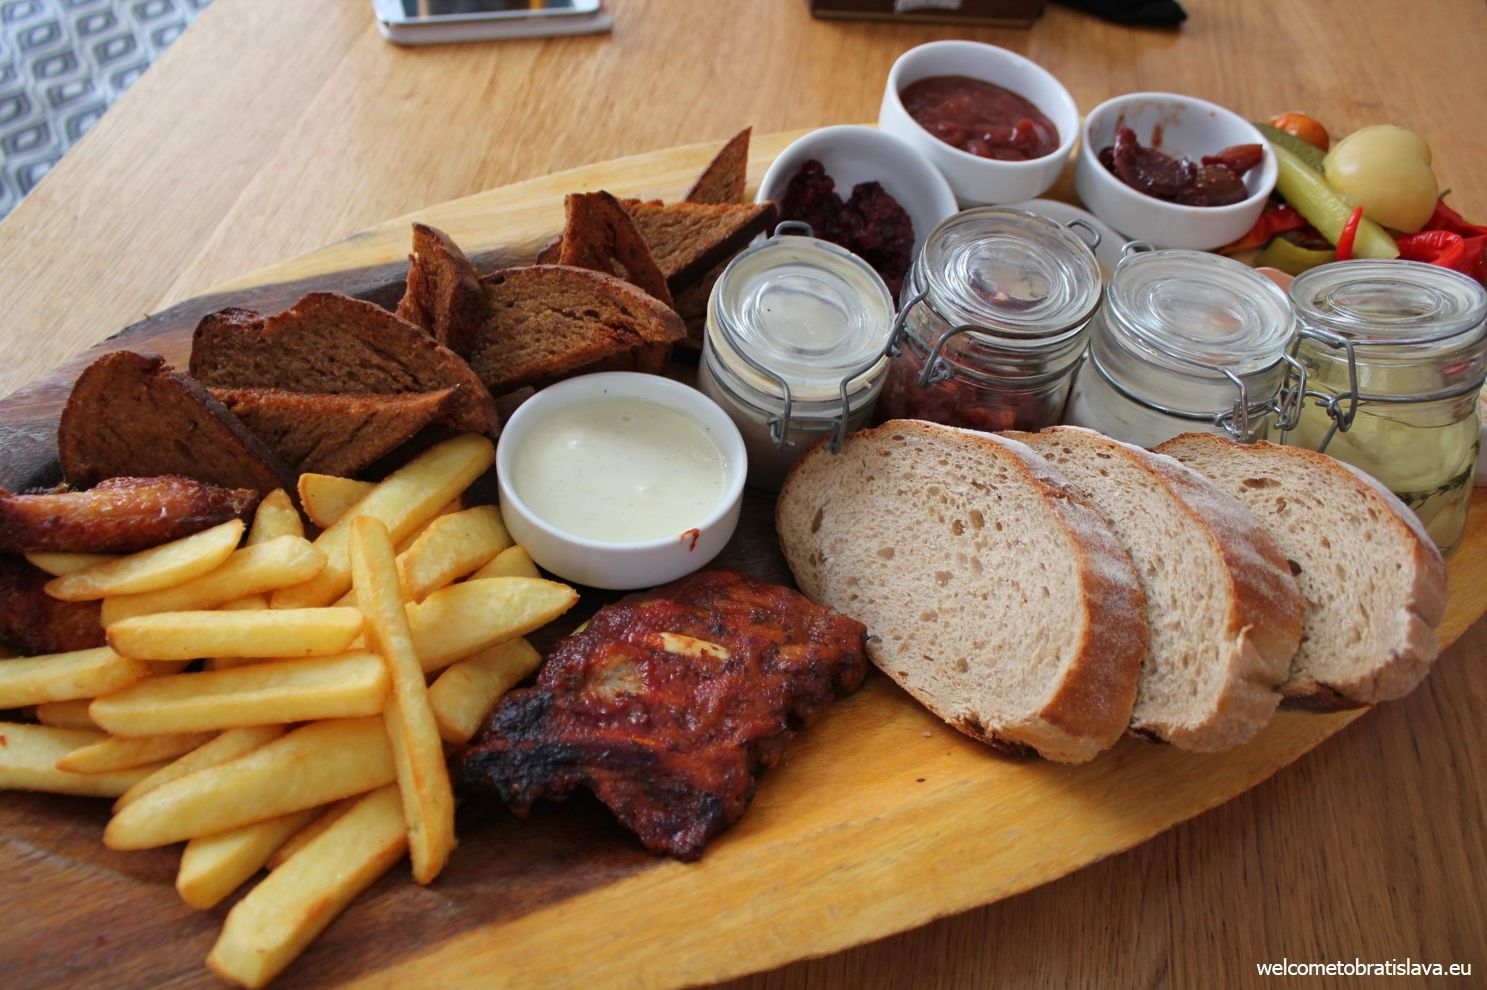 A selection of meats, spreads and pates from the Slovak cuisine :)